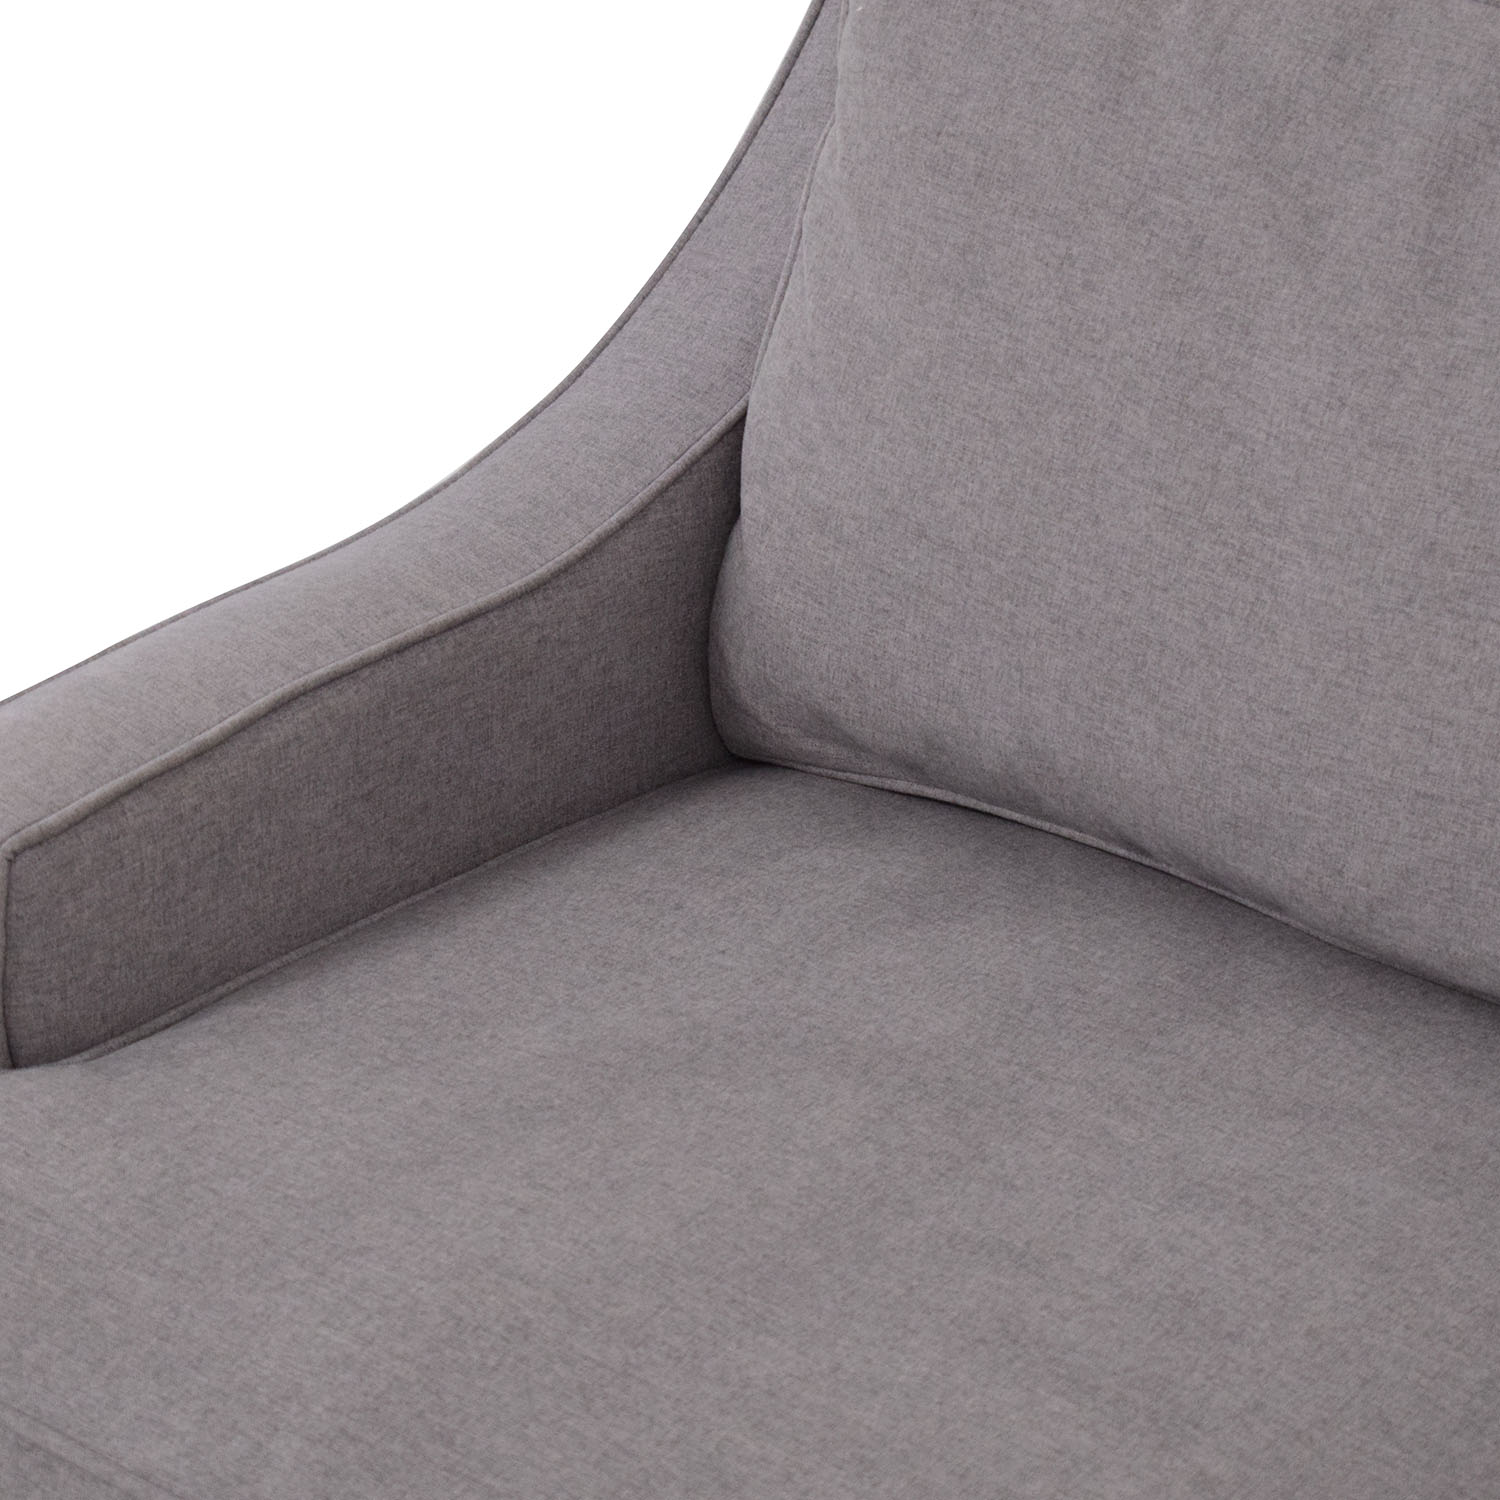 KFI KFI Furniture Three Seat Sofa dimensions